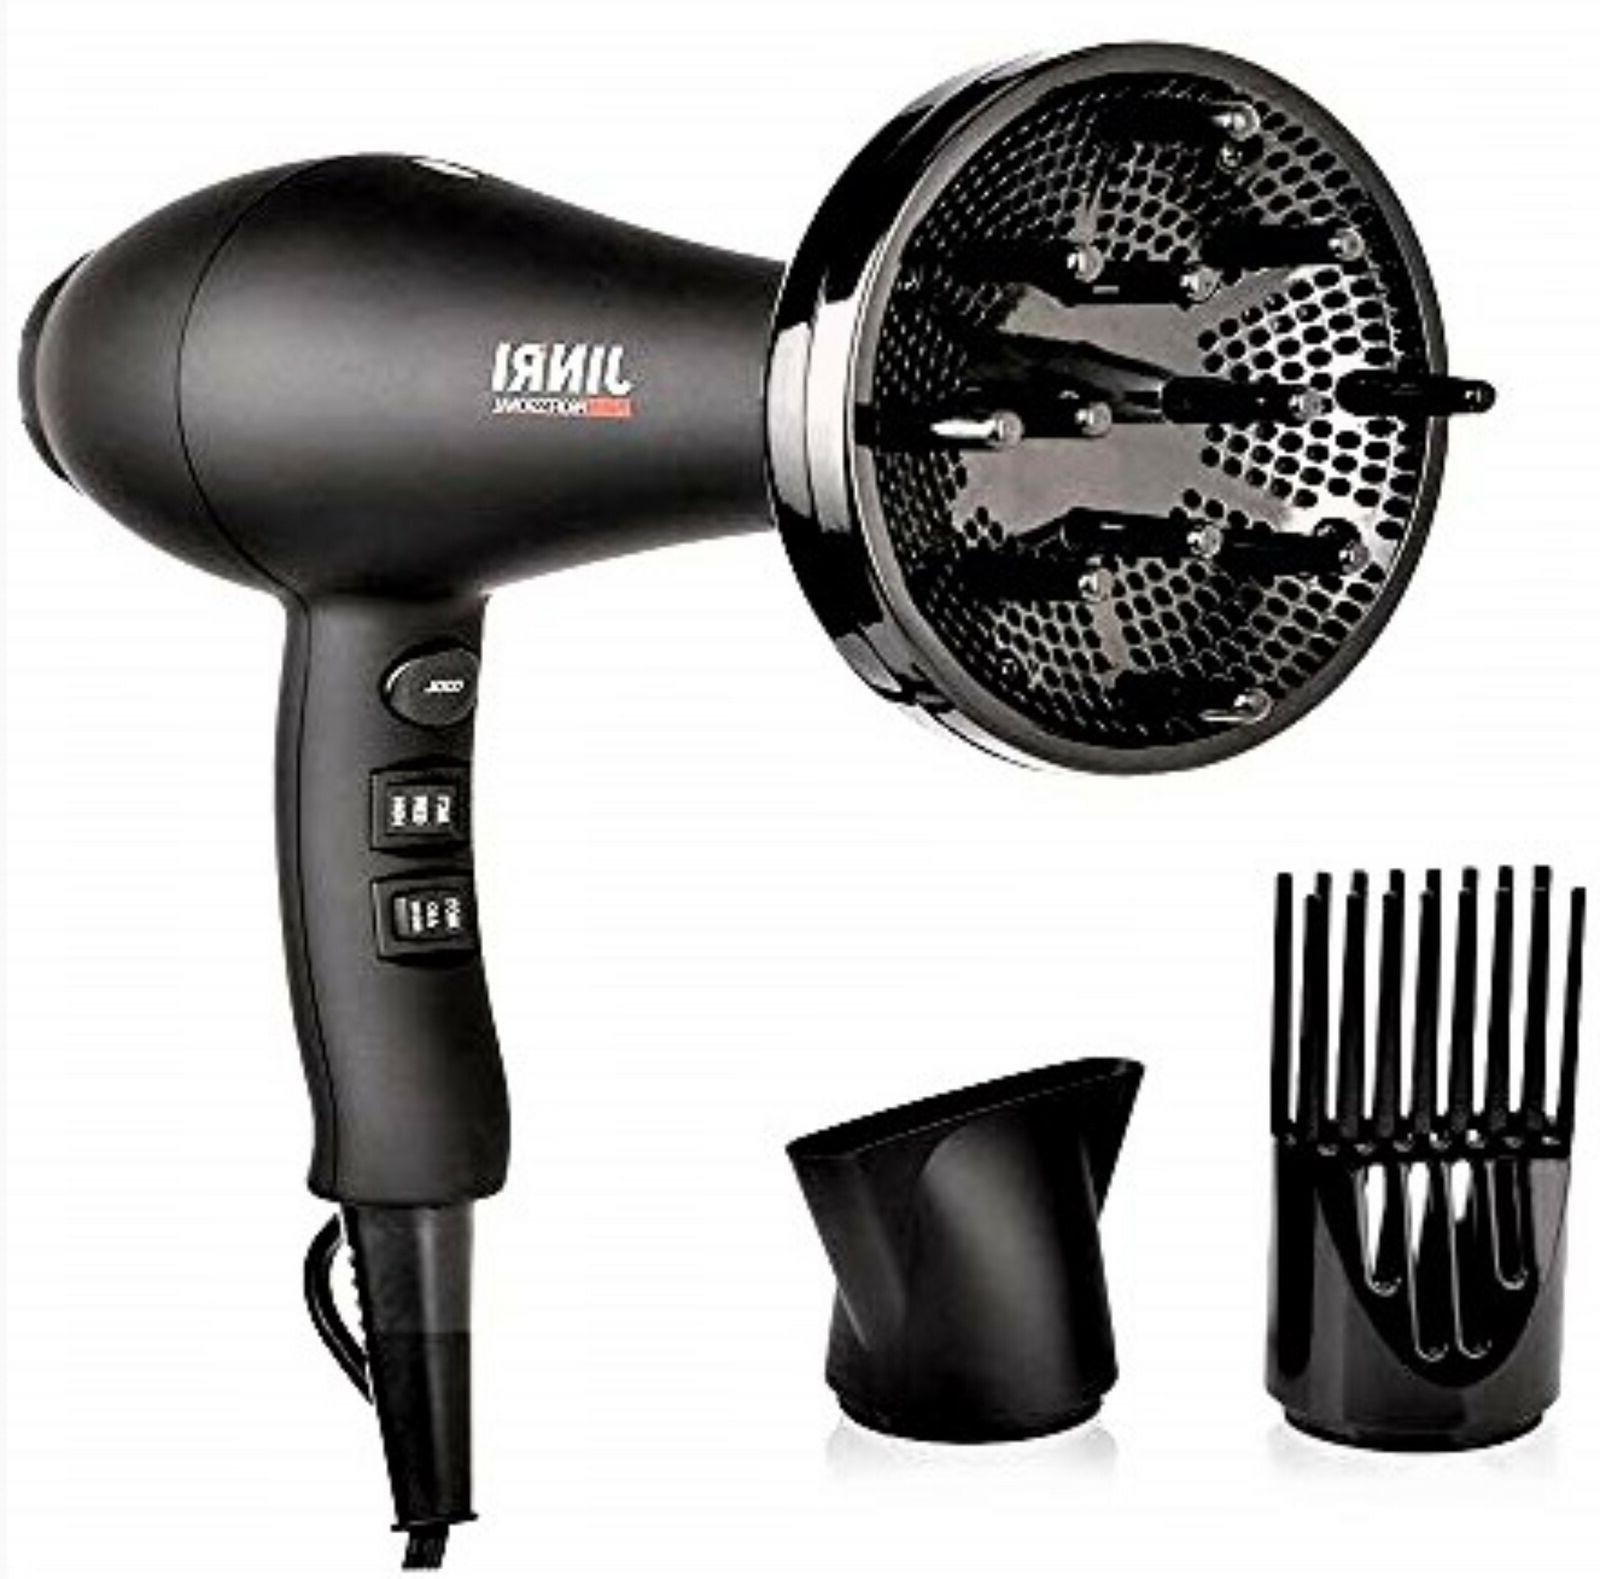 JINRI Iconic Hair Blow Dryer Salon AC Motor